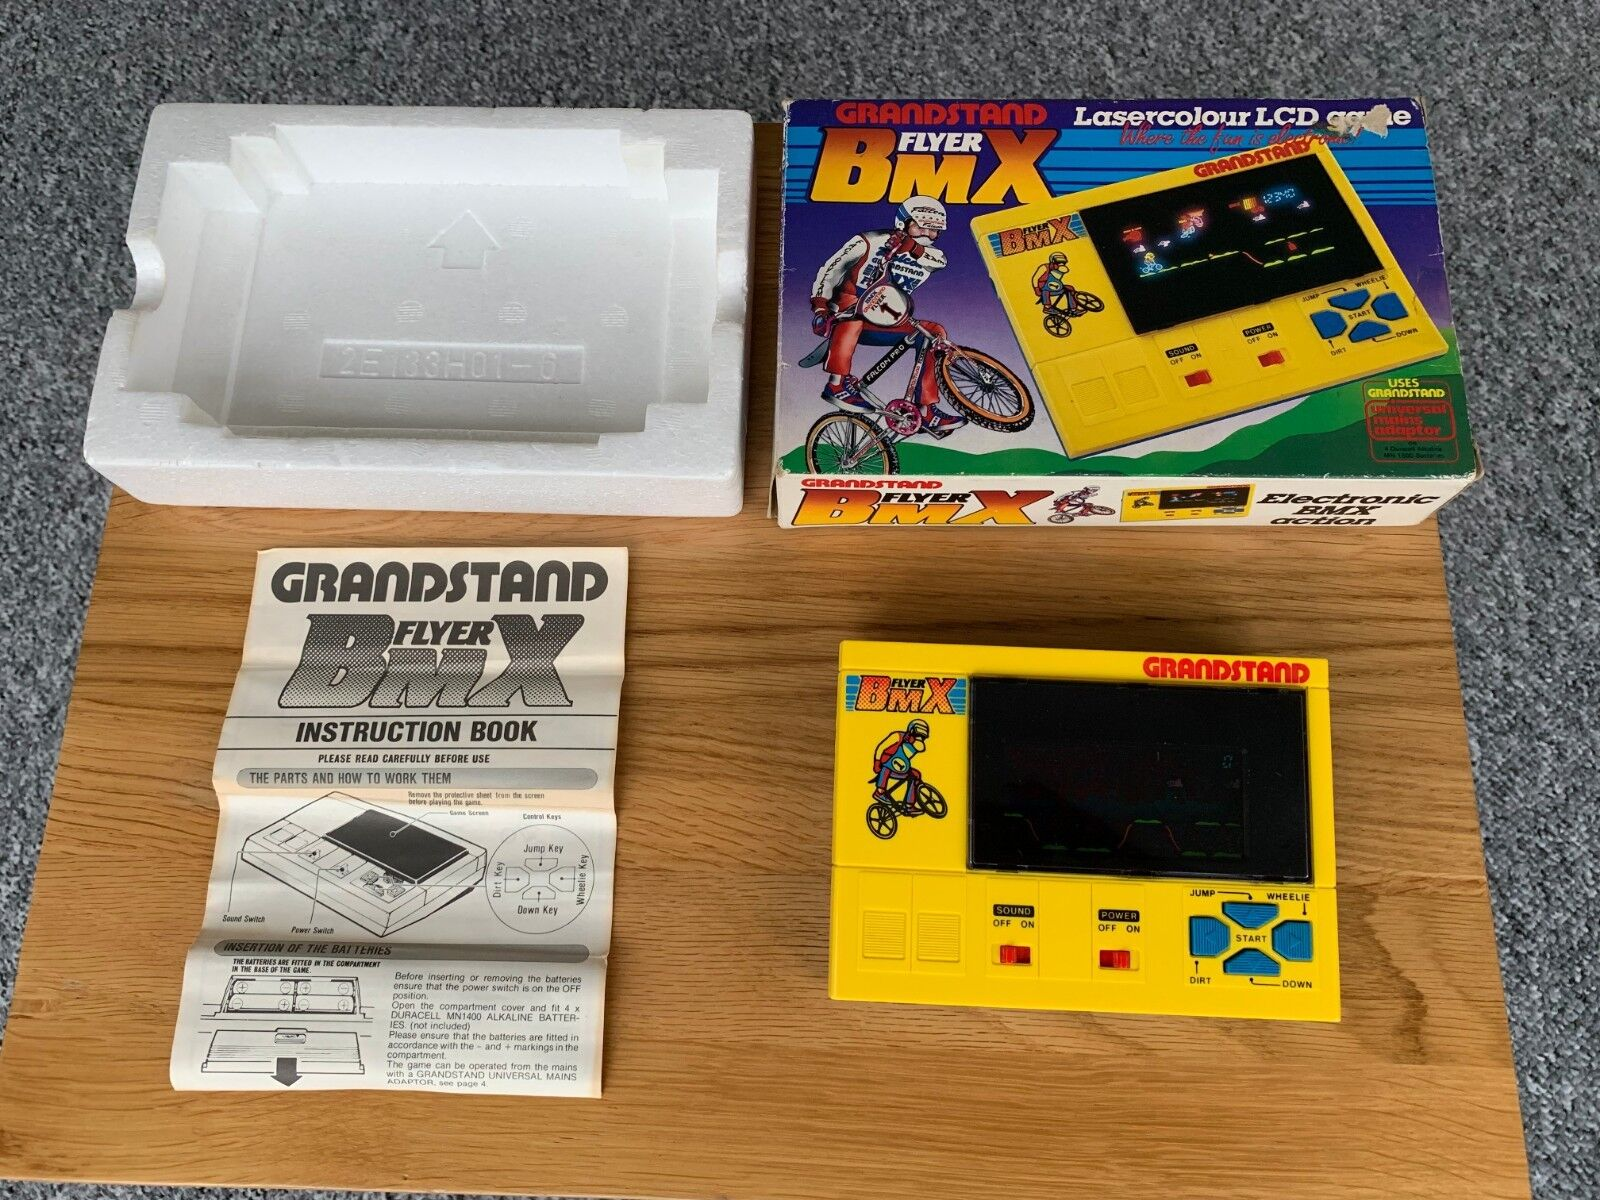 Rare Superb Boxed Grandstand BMX Flyer Lasercolour Vintage 1983 Electronic Game.